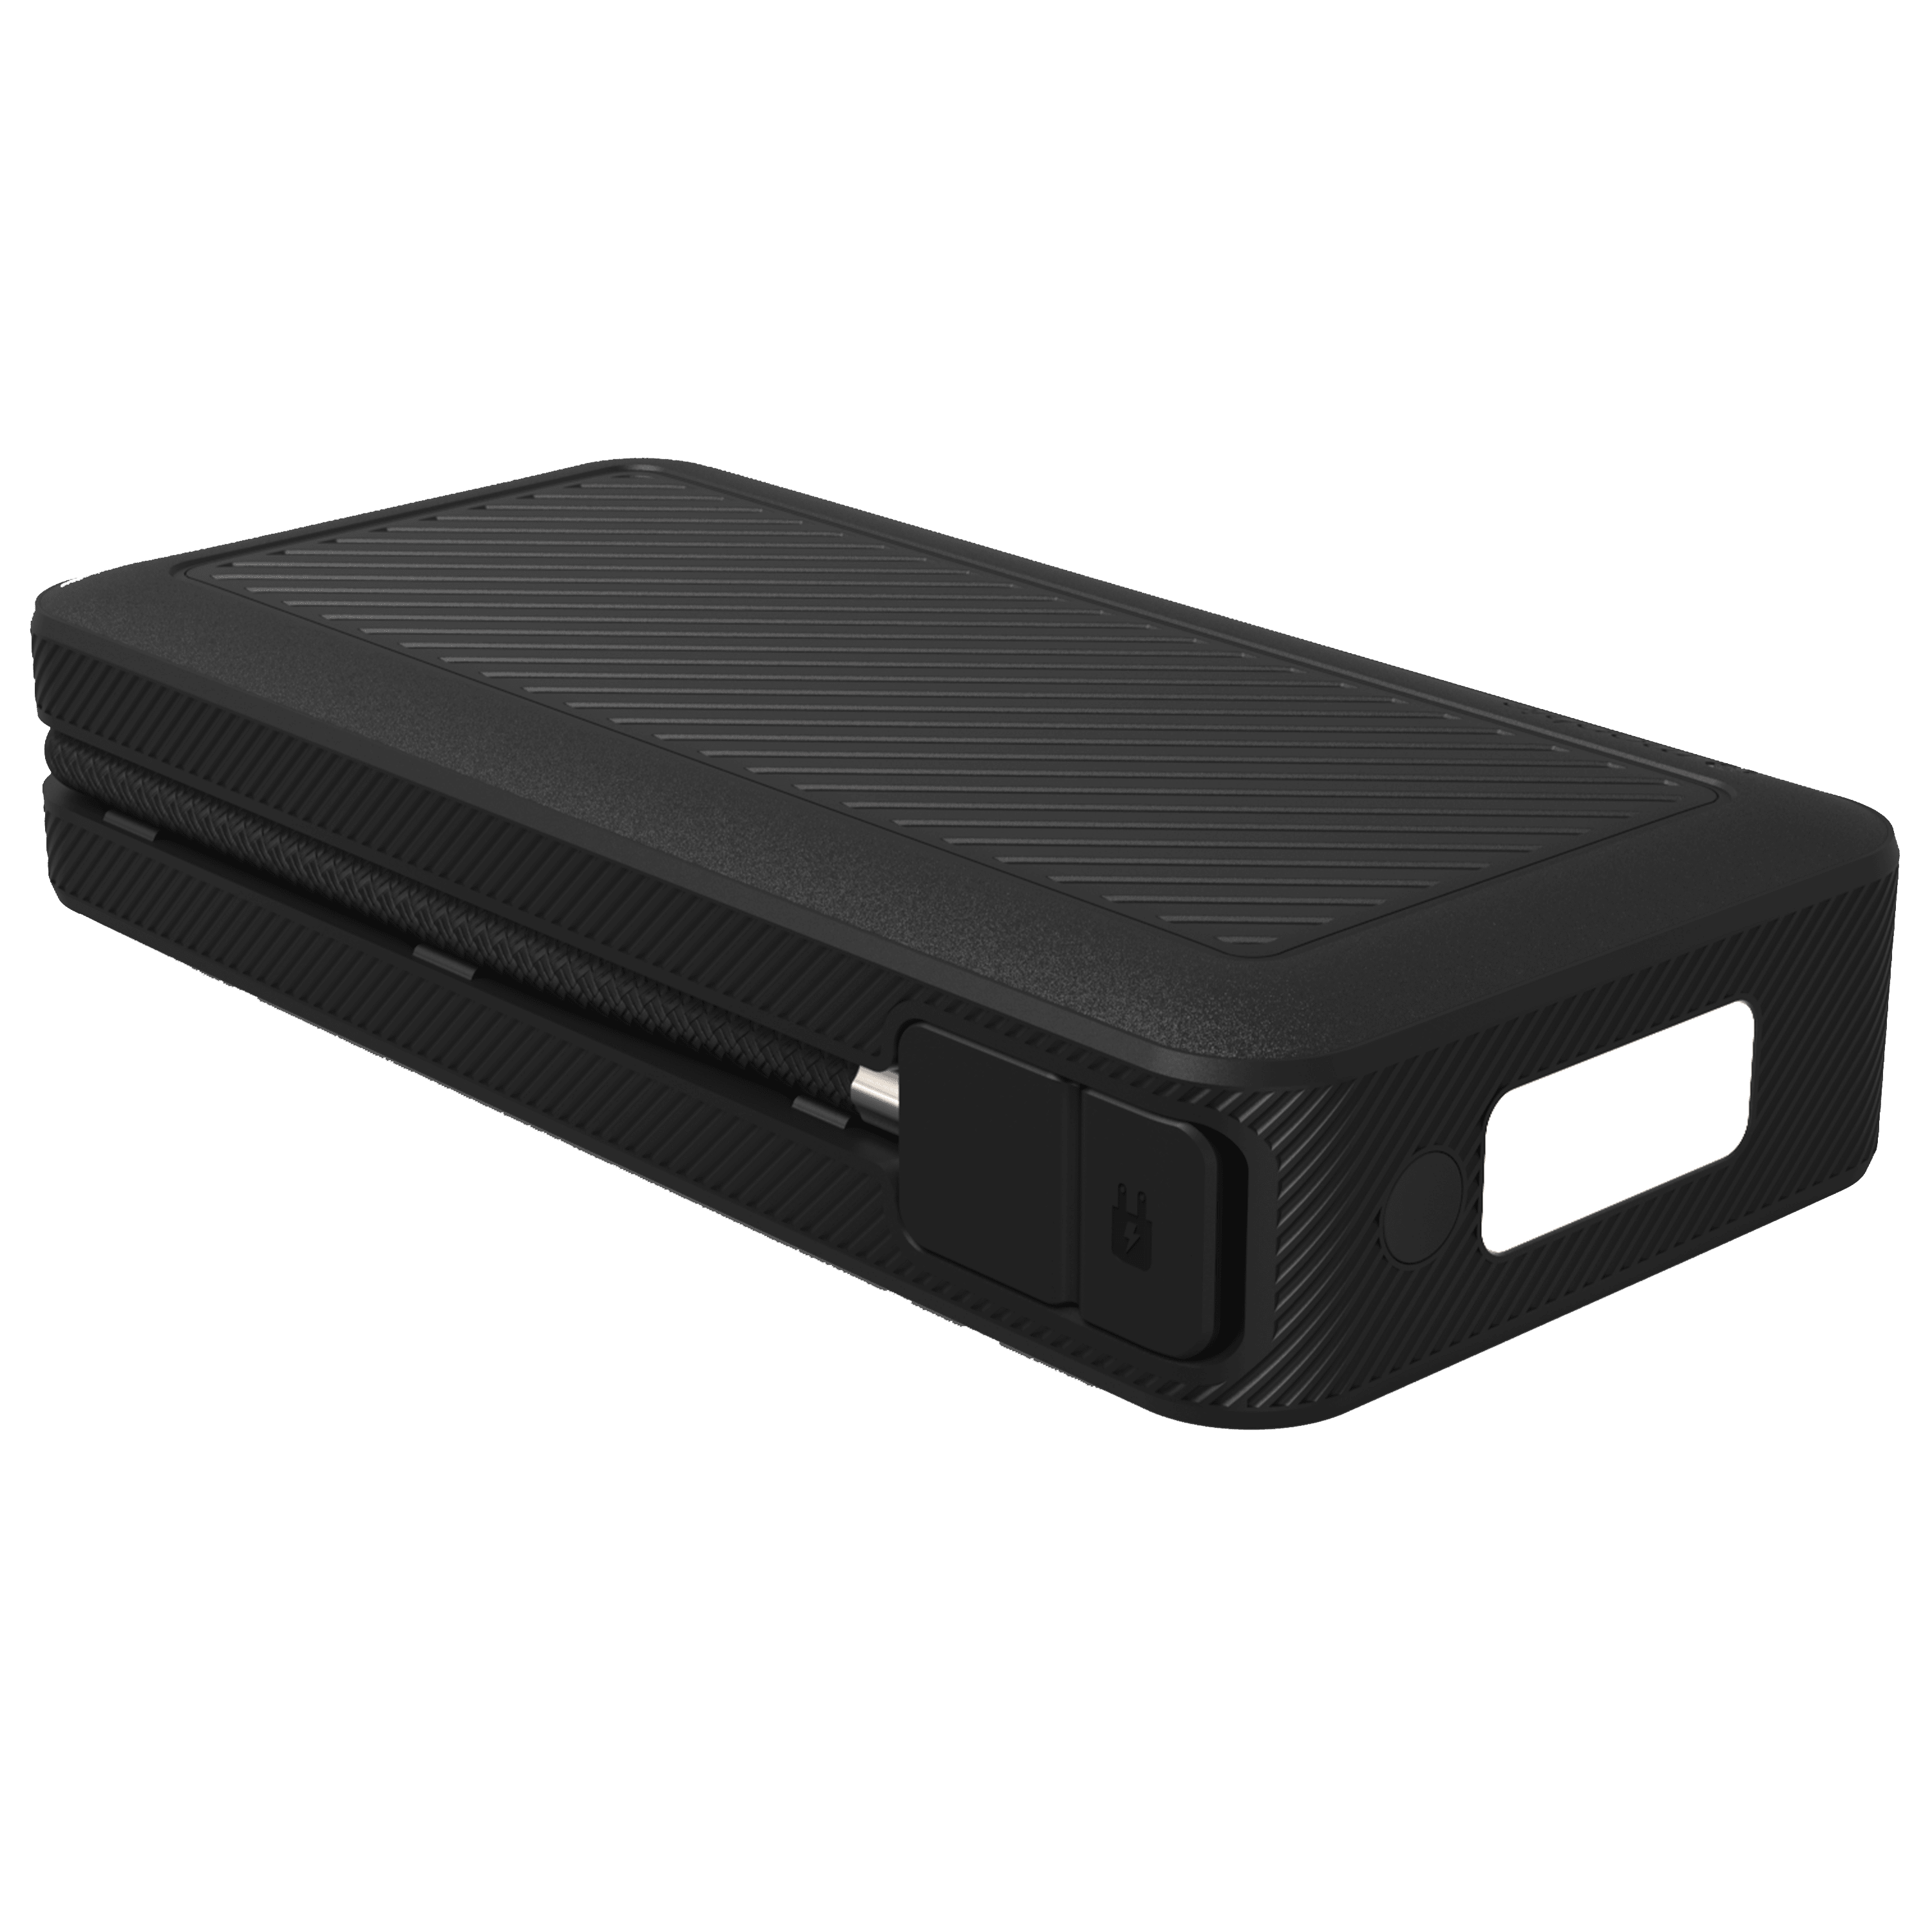 Wholesale cell phone accessory mophie - Powerstation Go Rugged AIR Power Bank - Black